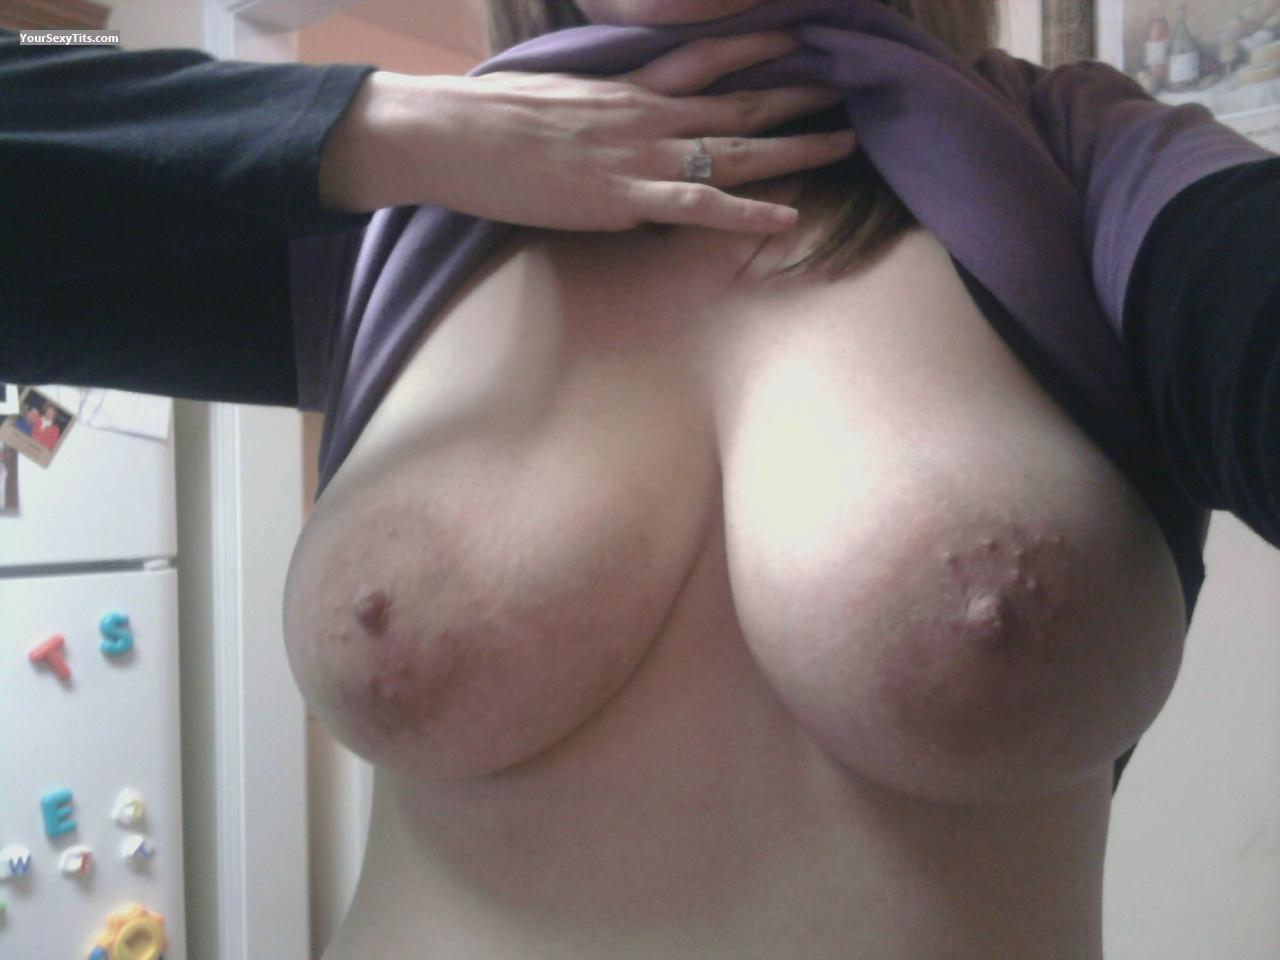 My Very big Tits Selfie by Pregnant Tits